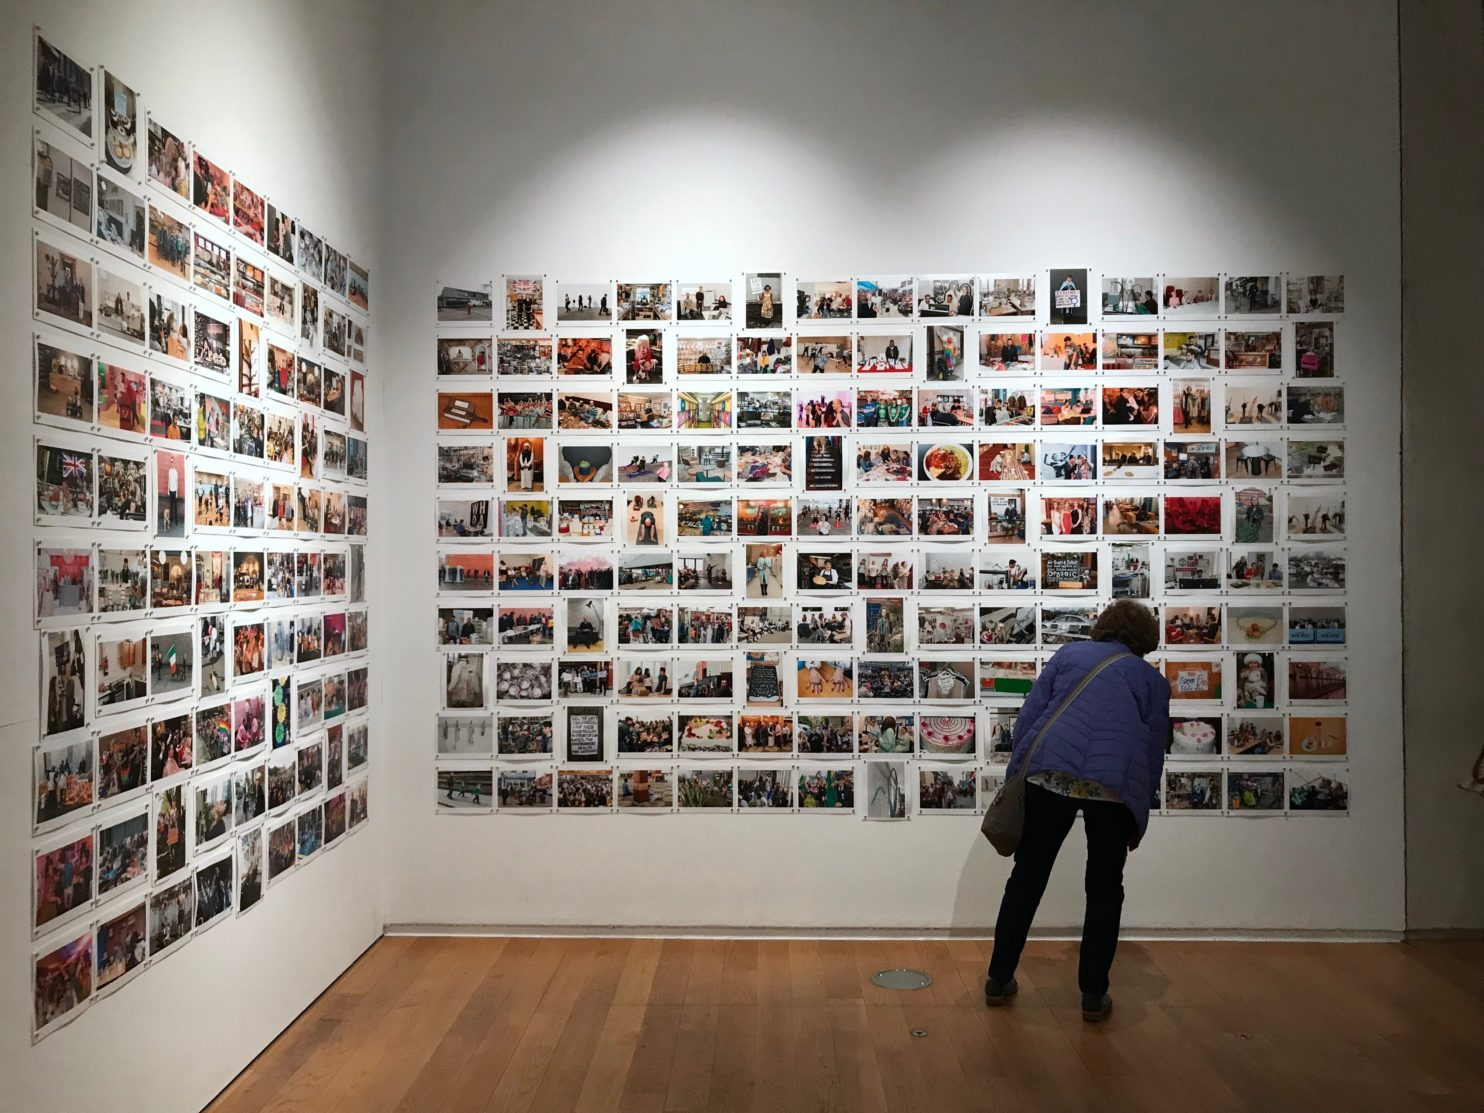 Martin Parr exhibition at Manchester Art Gallery